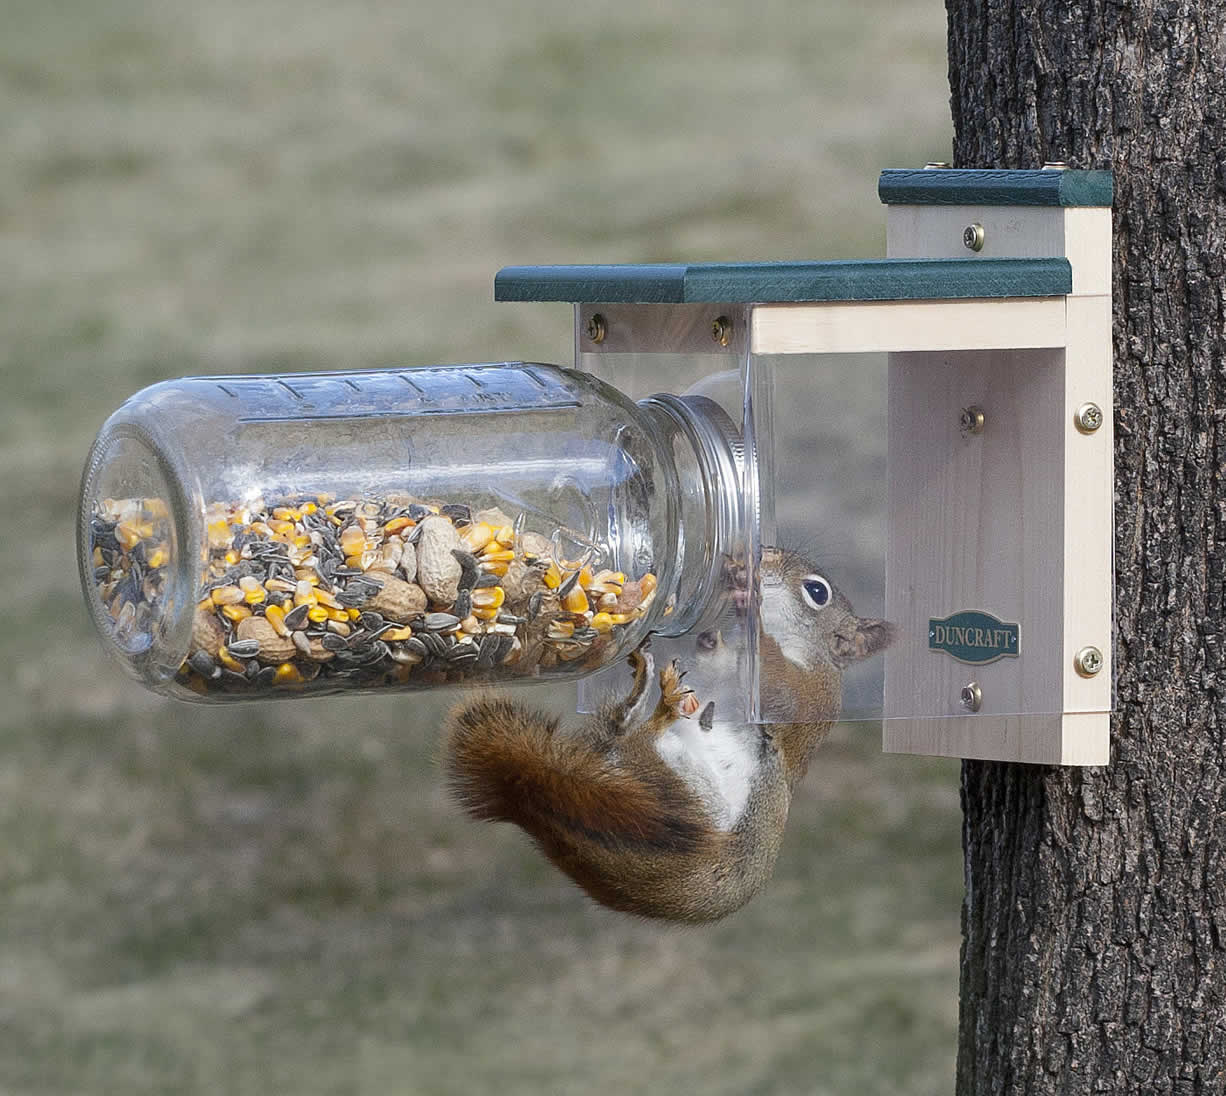 Duncraft Com Duncraft Down Under Squirrel Jar Feeder